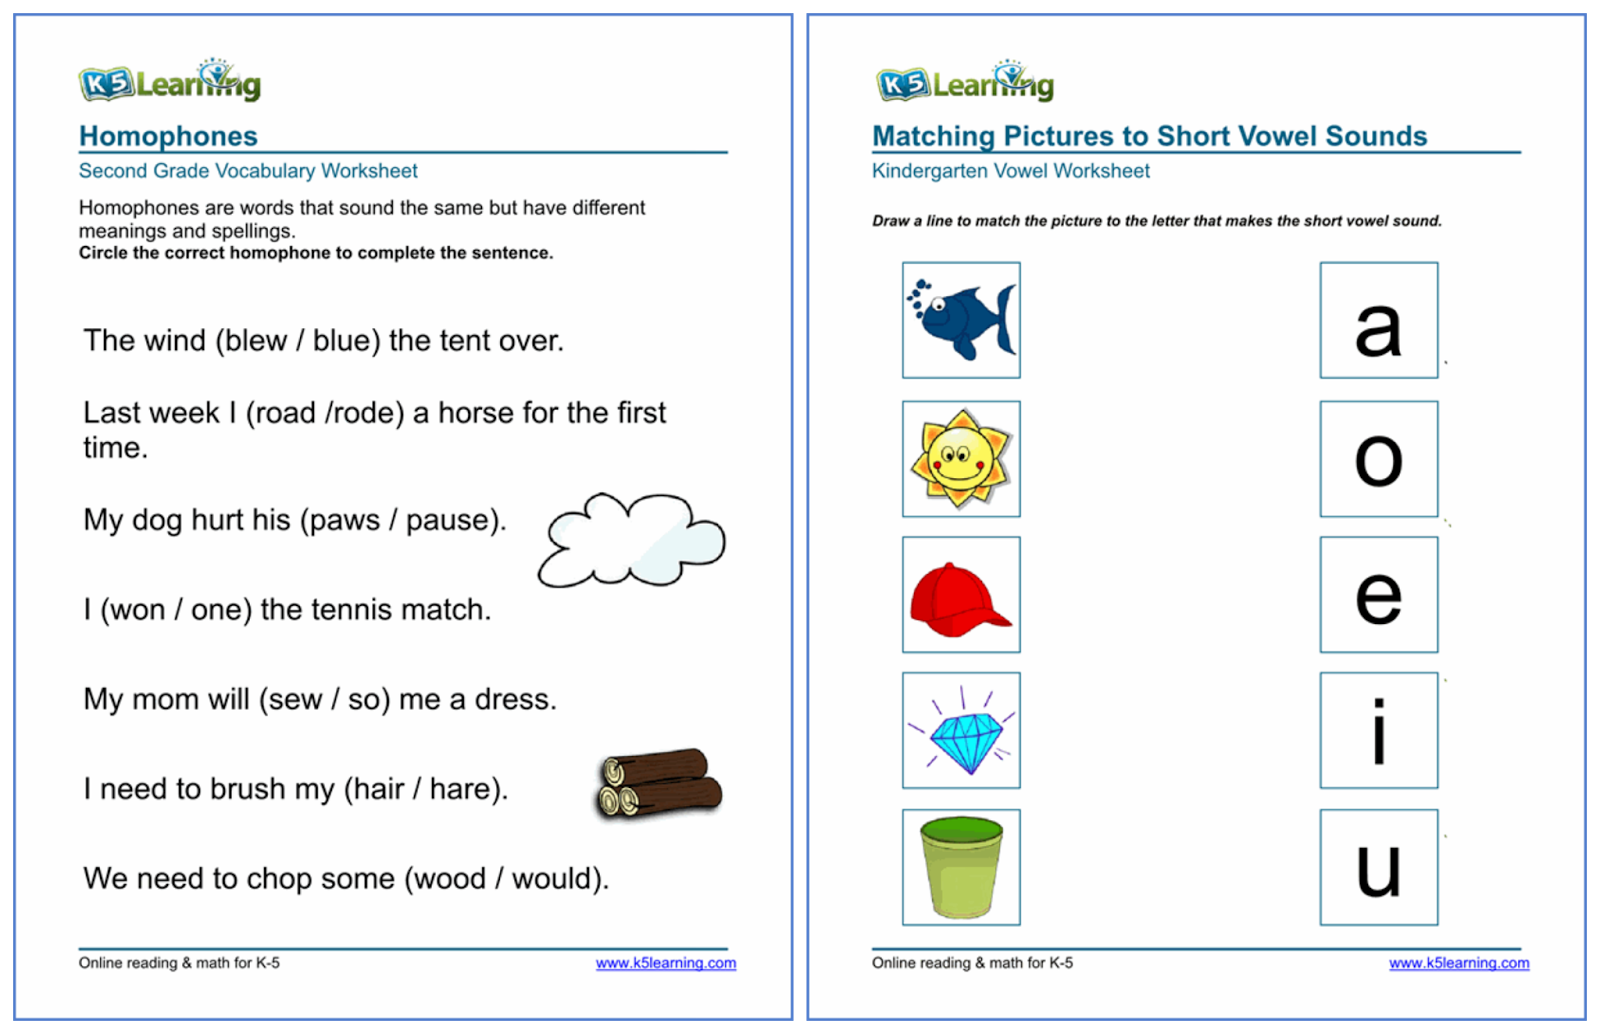 K 5 Worksheets : Online math and reading enrichment program for kids k